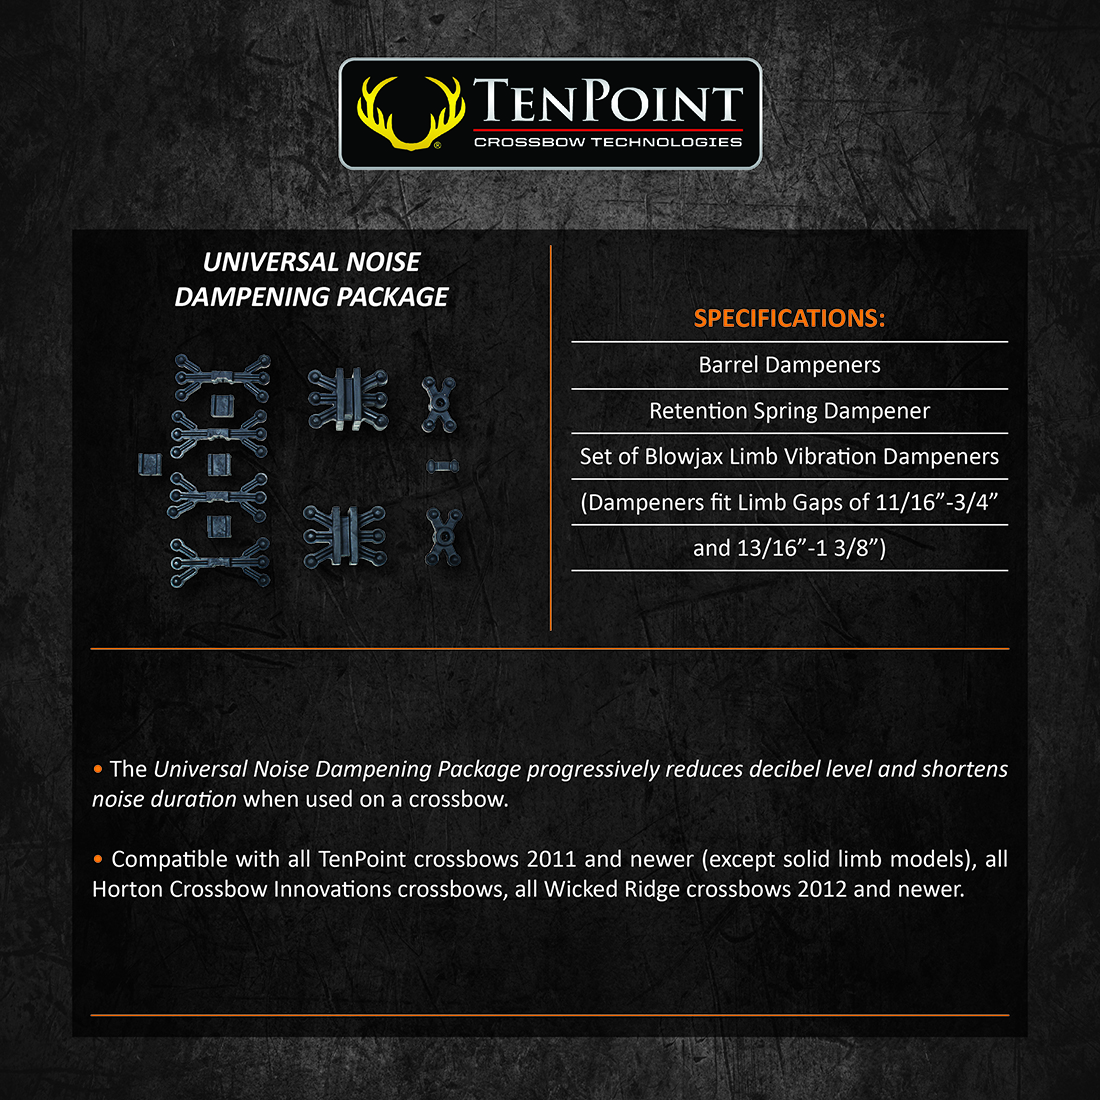 TenPoint_Universal_Noise_Dampening_Package_Product_Description